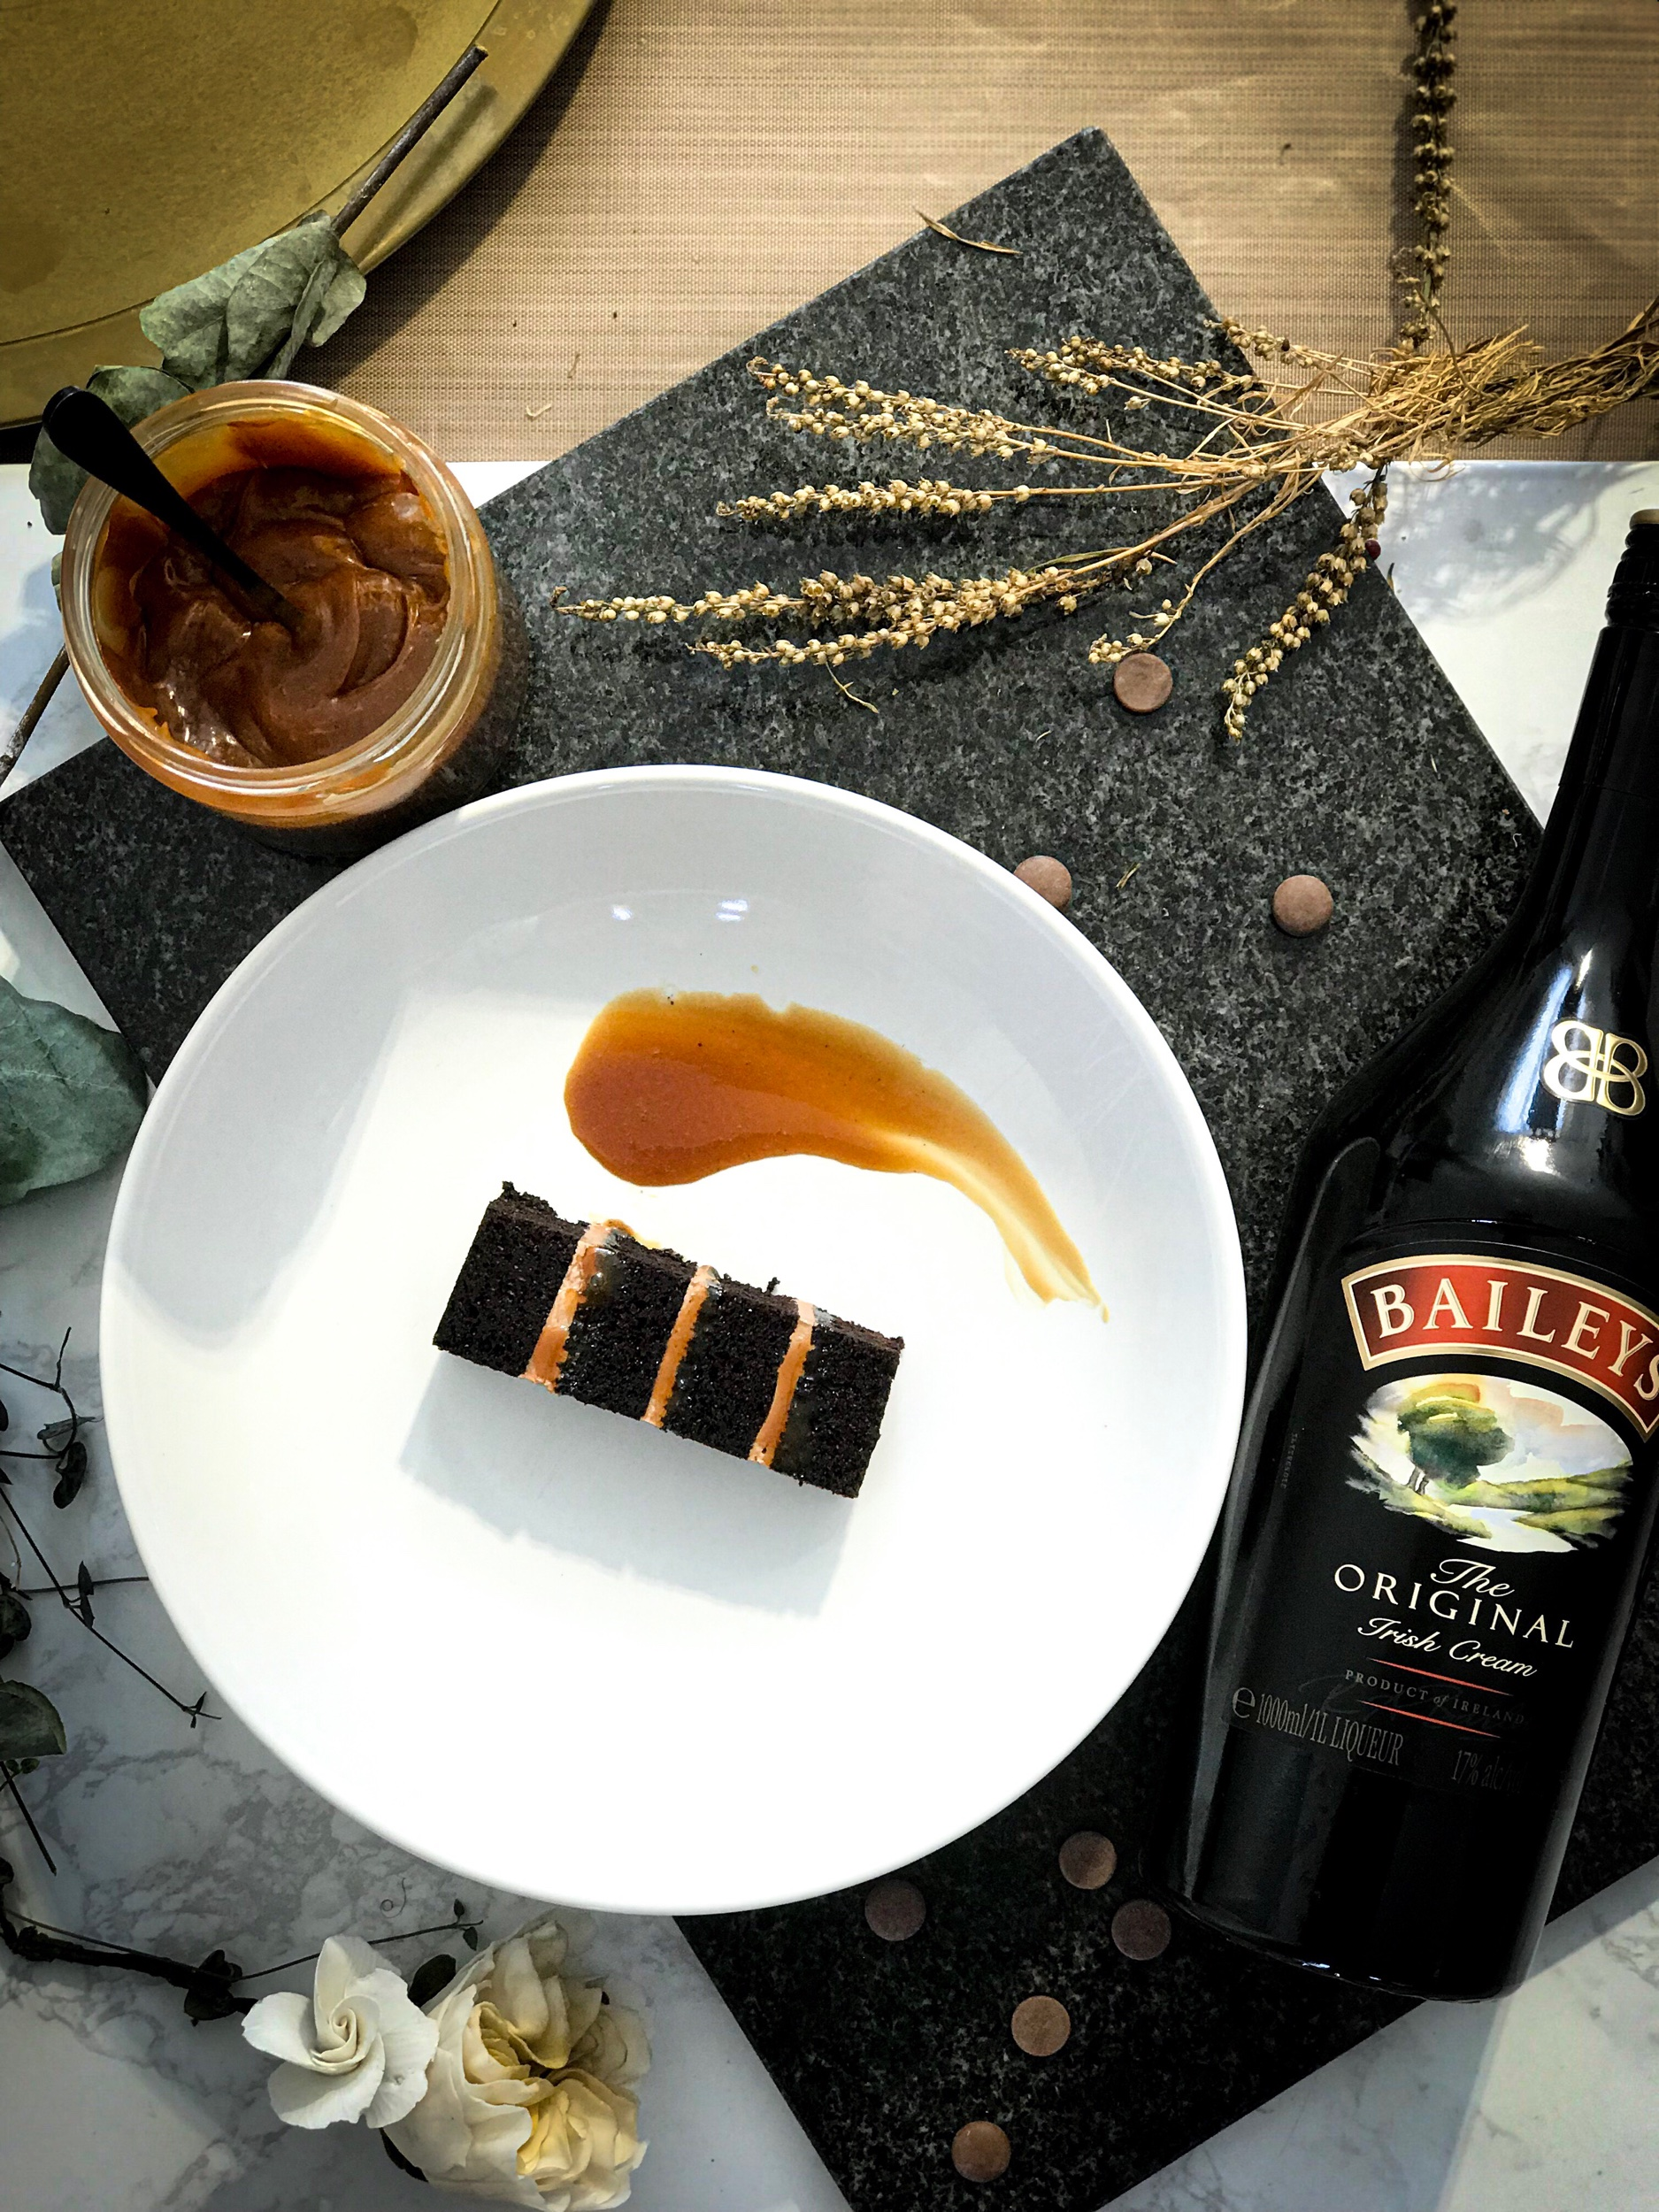 SALTED CARAMEL CHOC.  Salted Caramel and Chocolate never disappoint, and when you have that little hint of baileys in it? It's party time!